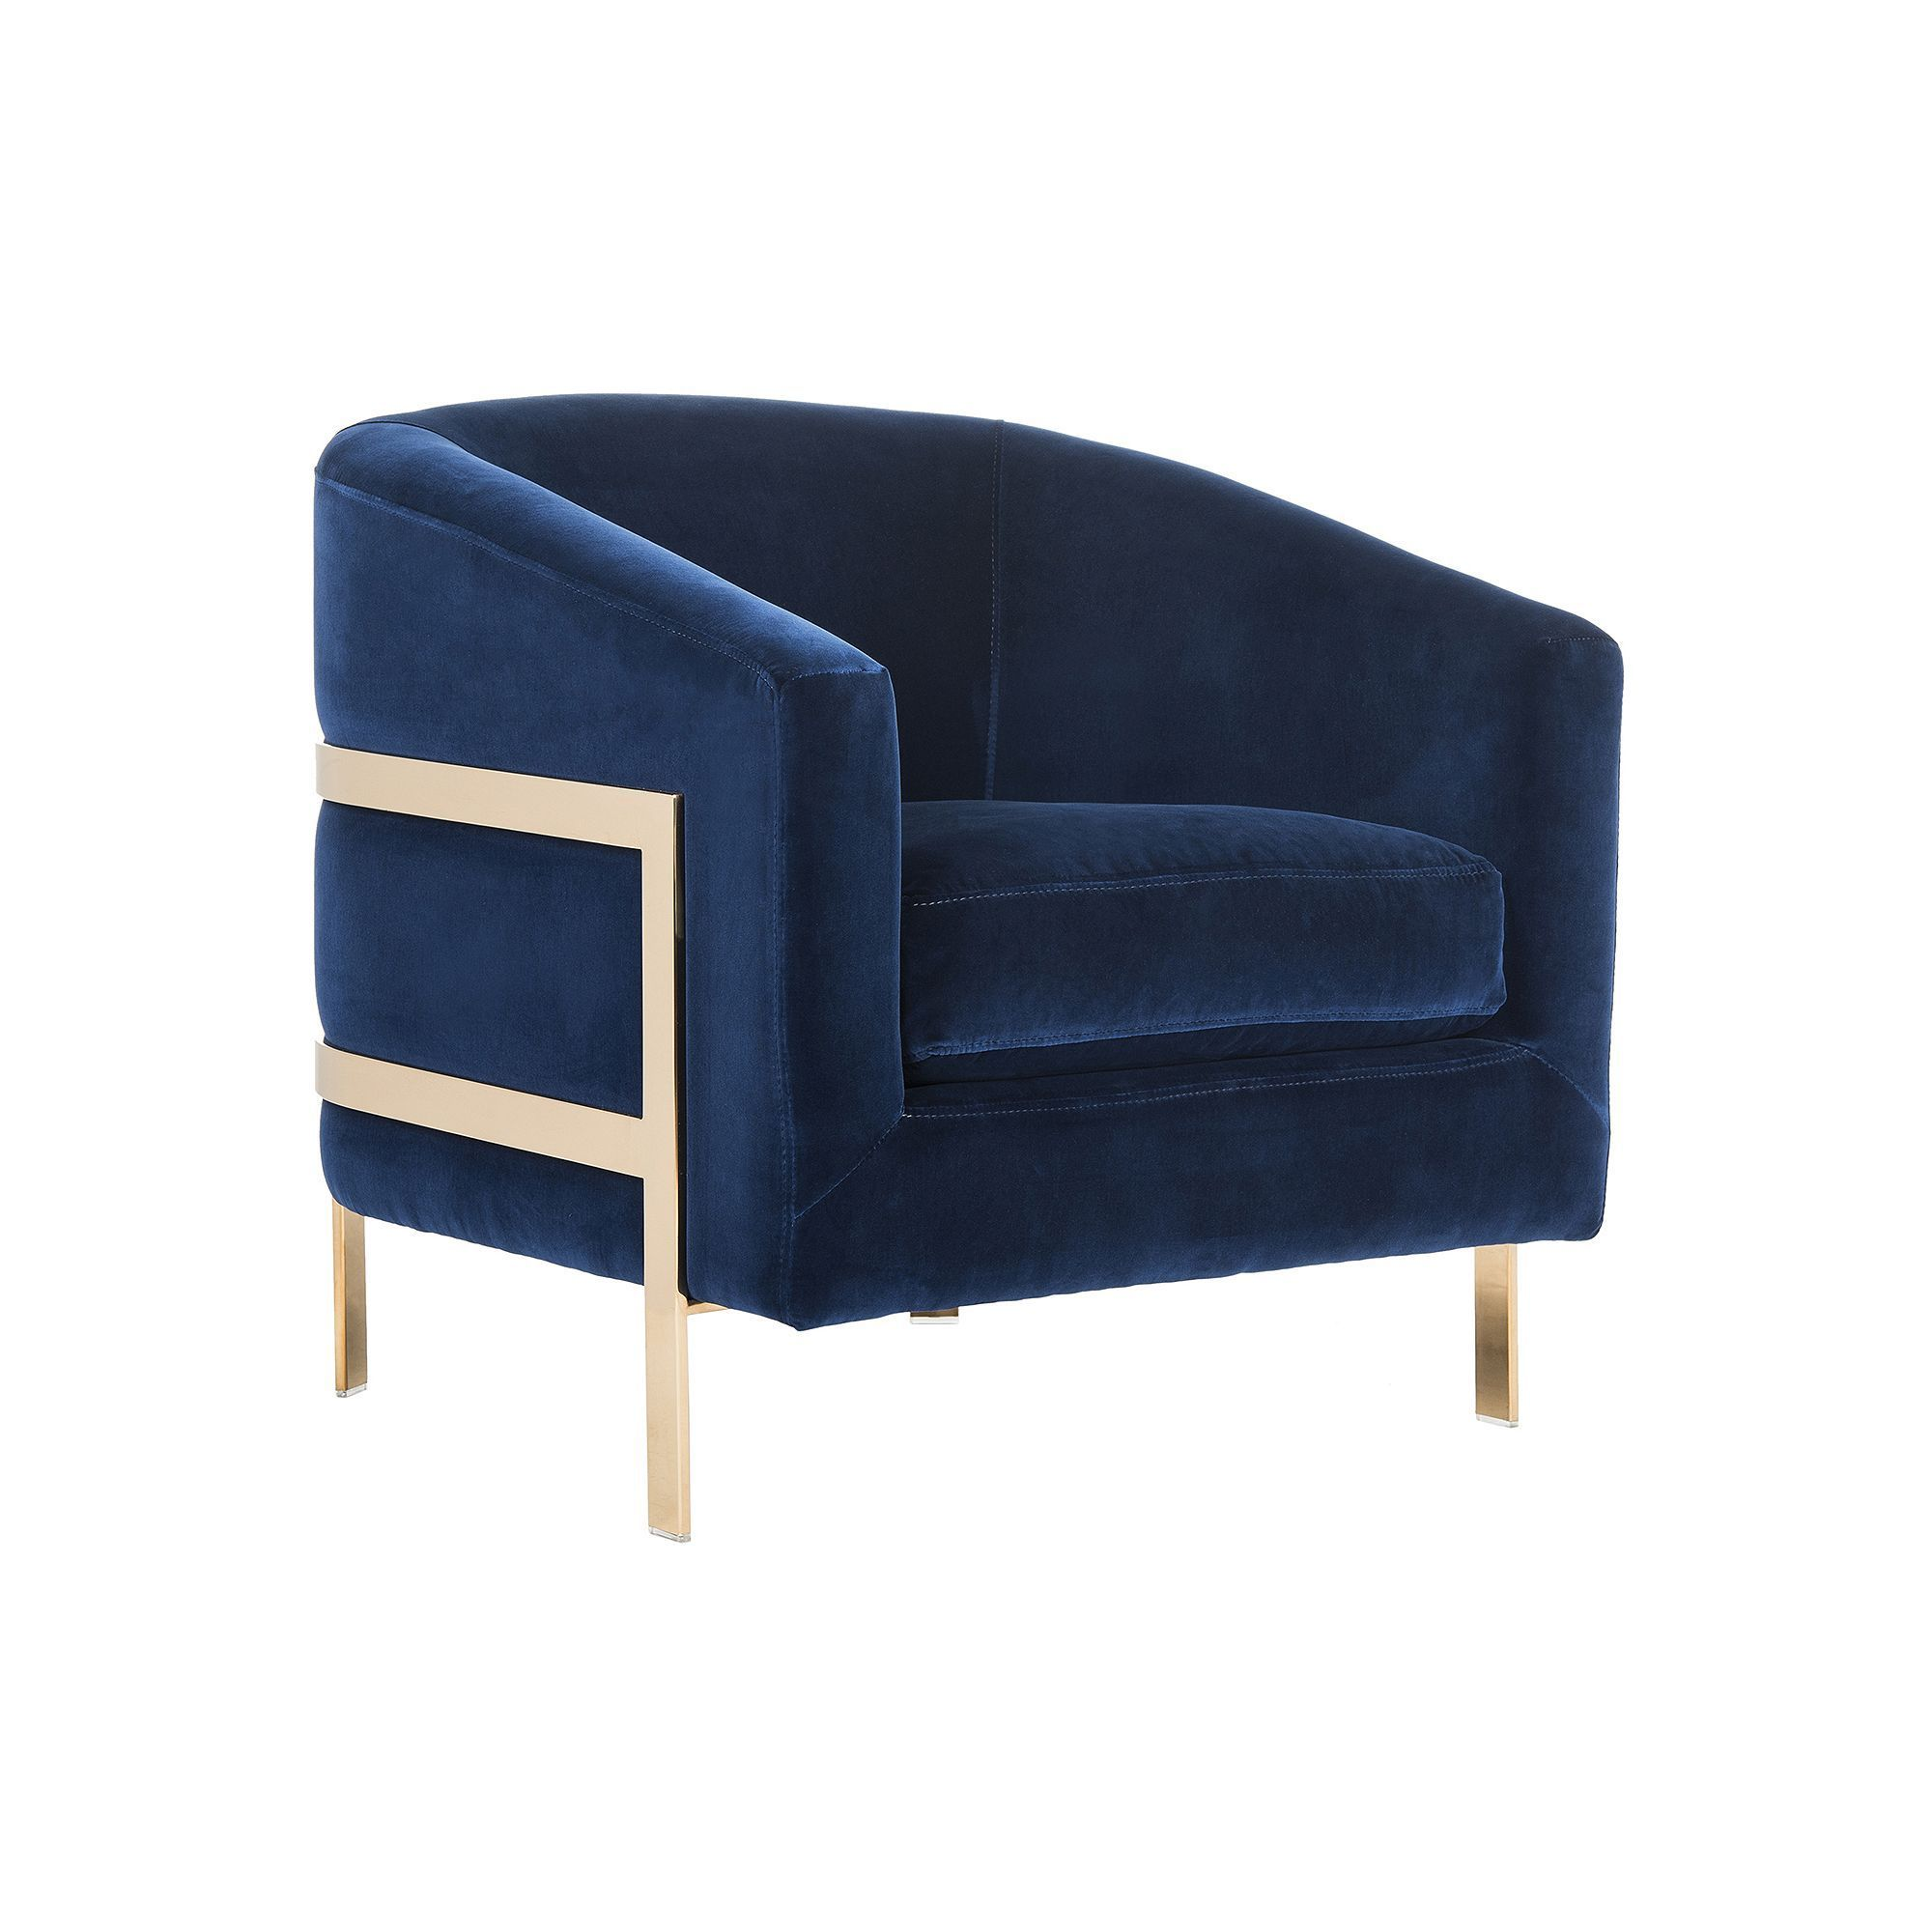 Navy Blue Velvet Club Chair Computer Gaming Chairs For Adults Safavieh Couture Accent In 2019 Products